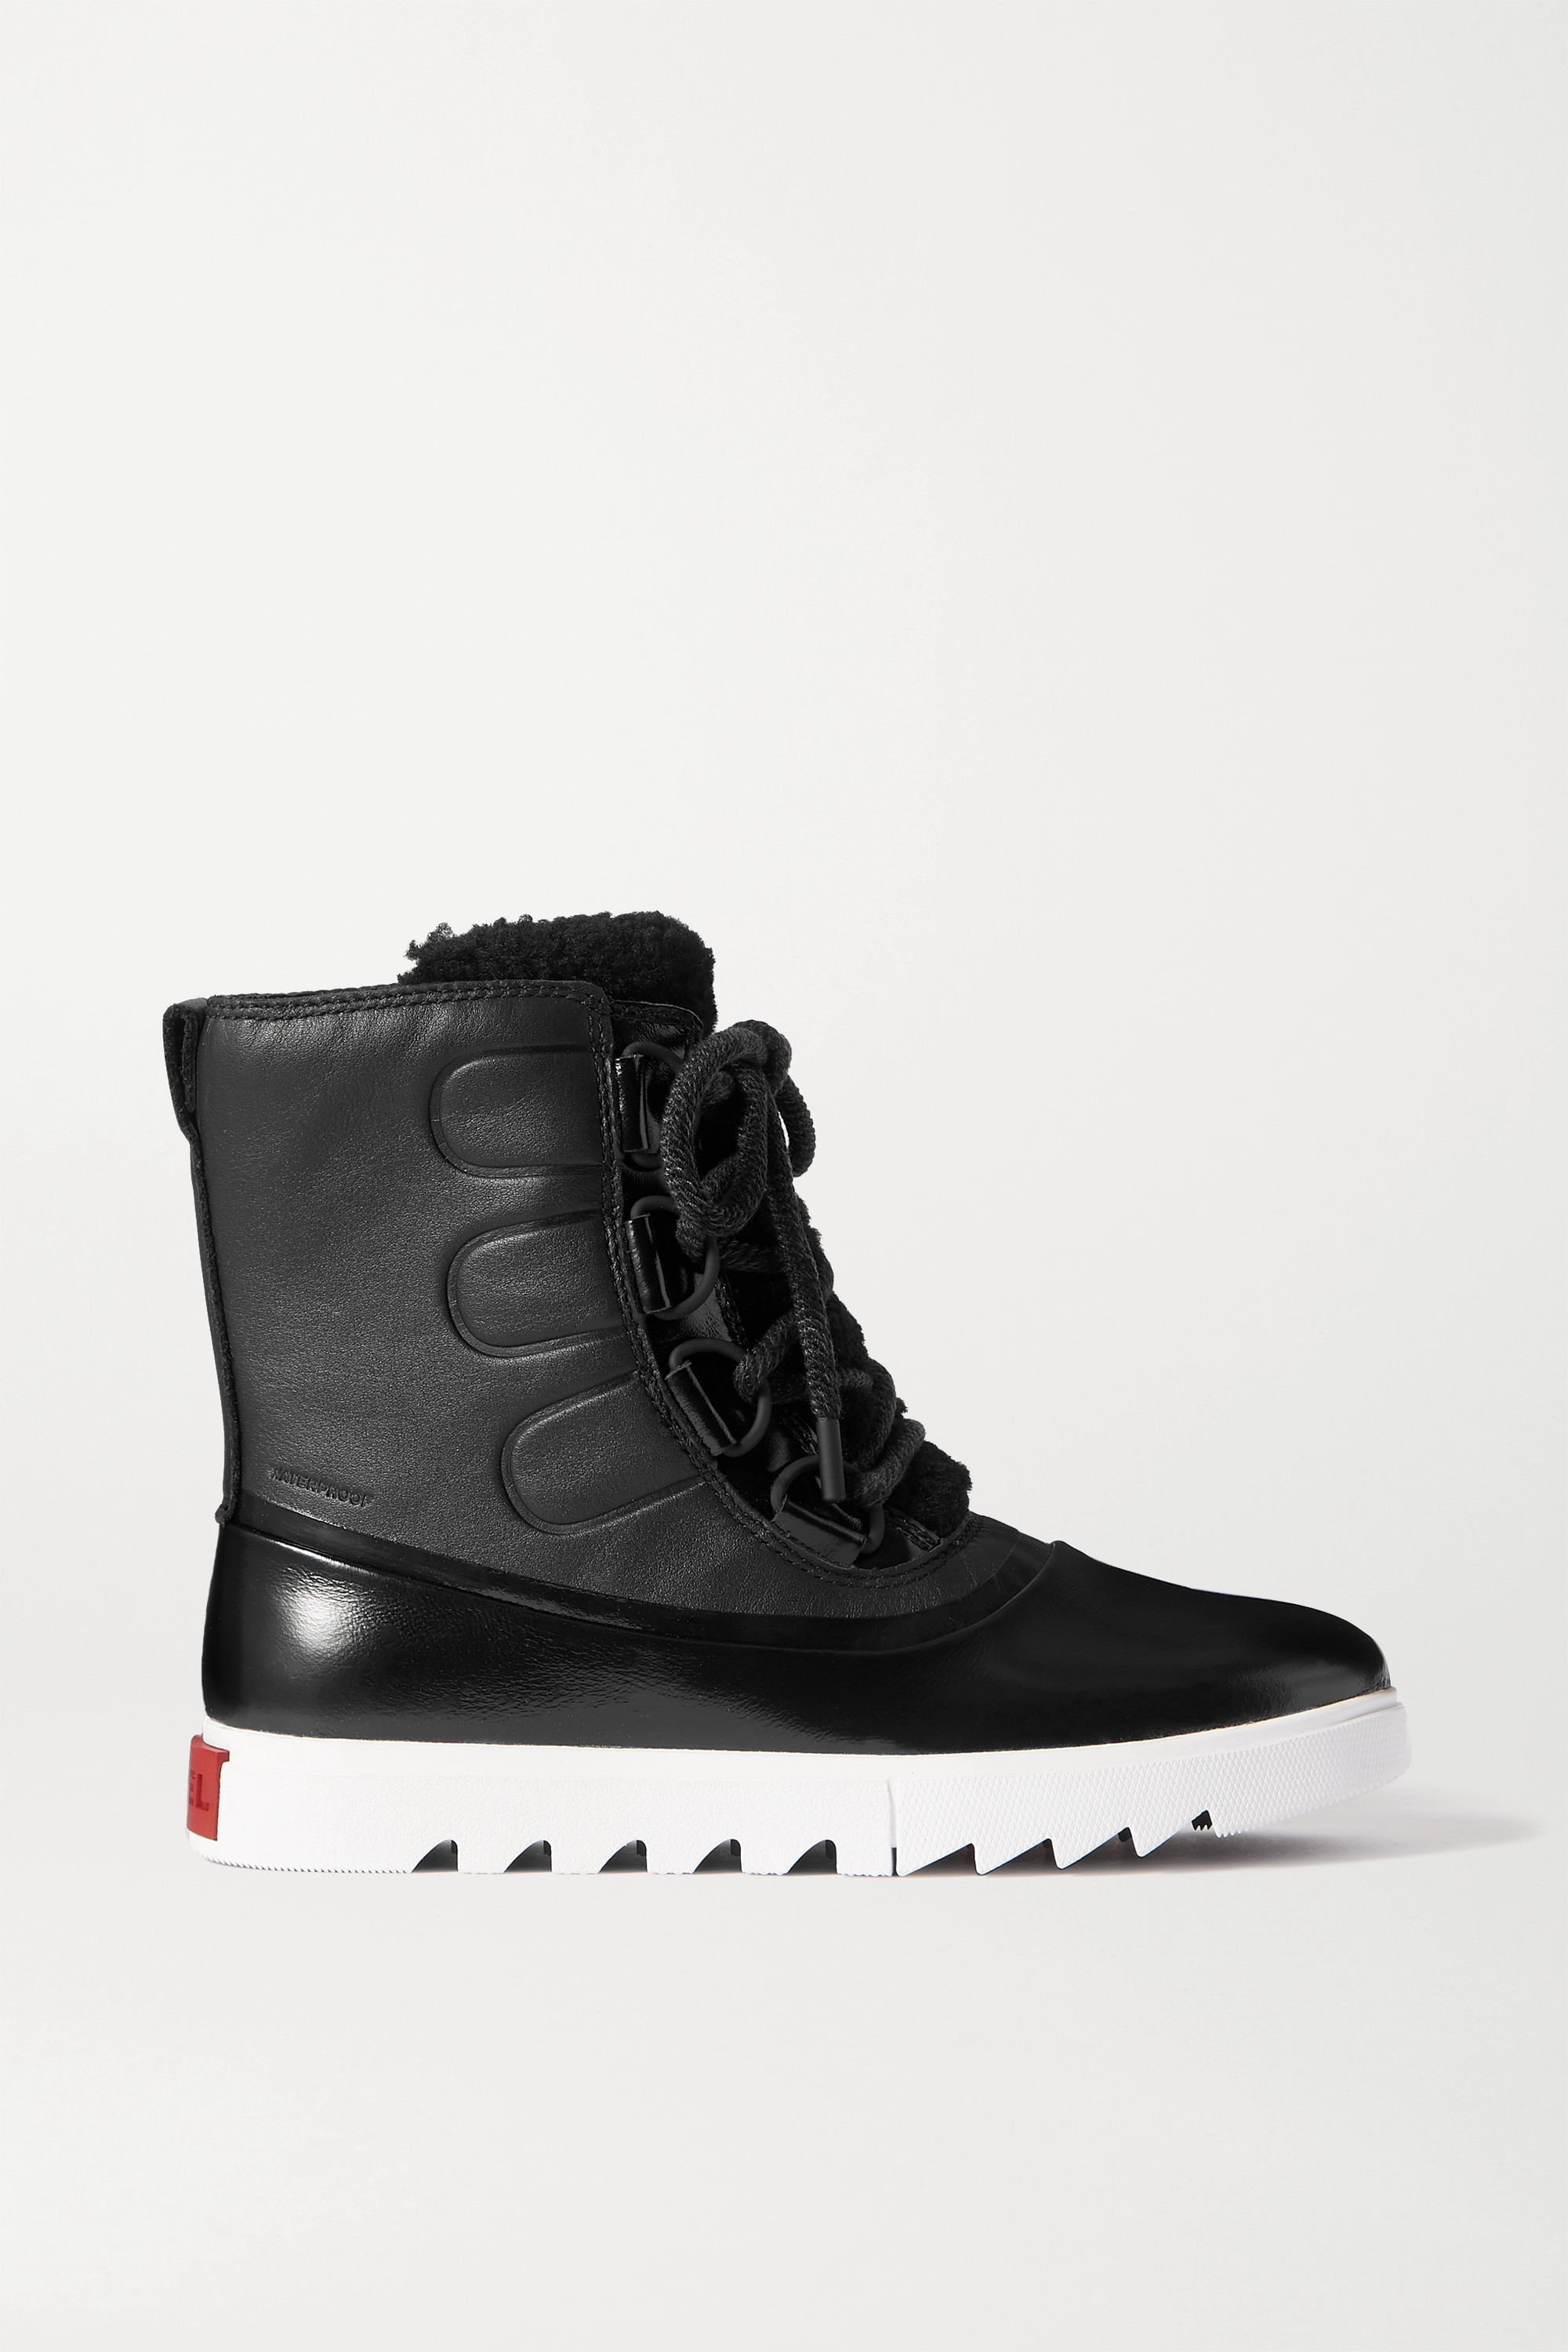 SOREL Joan of Arctic NEXT LITE waterproof shearling-trimmed leather and rubber boots